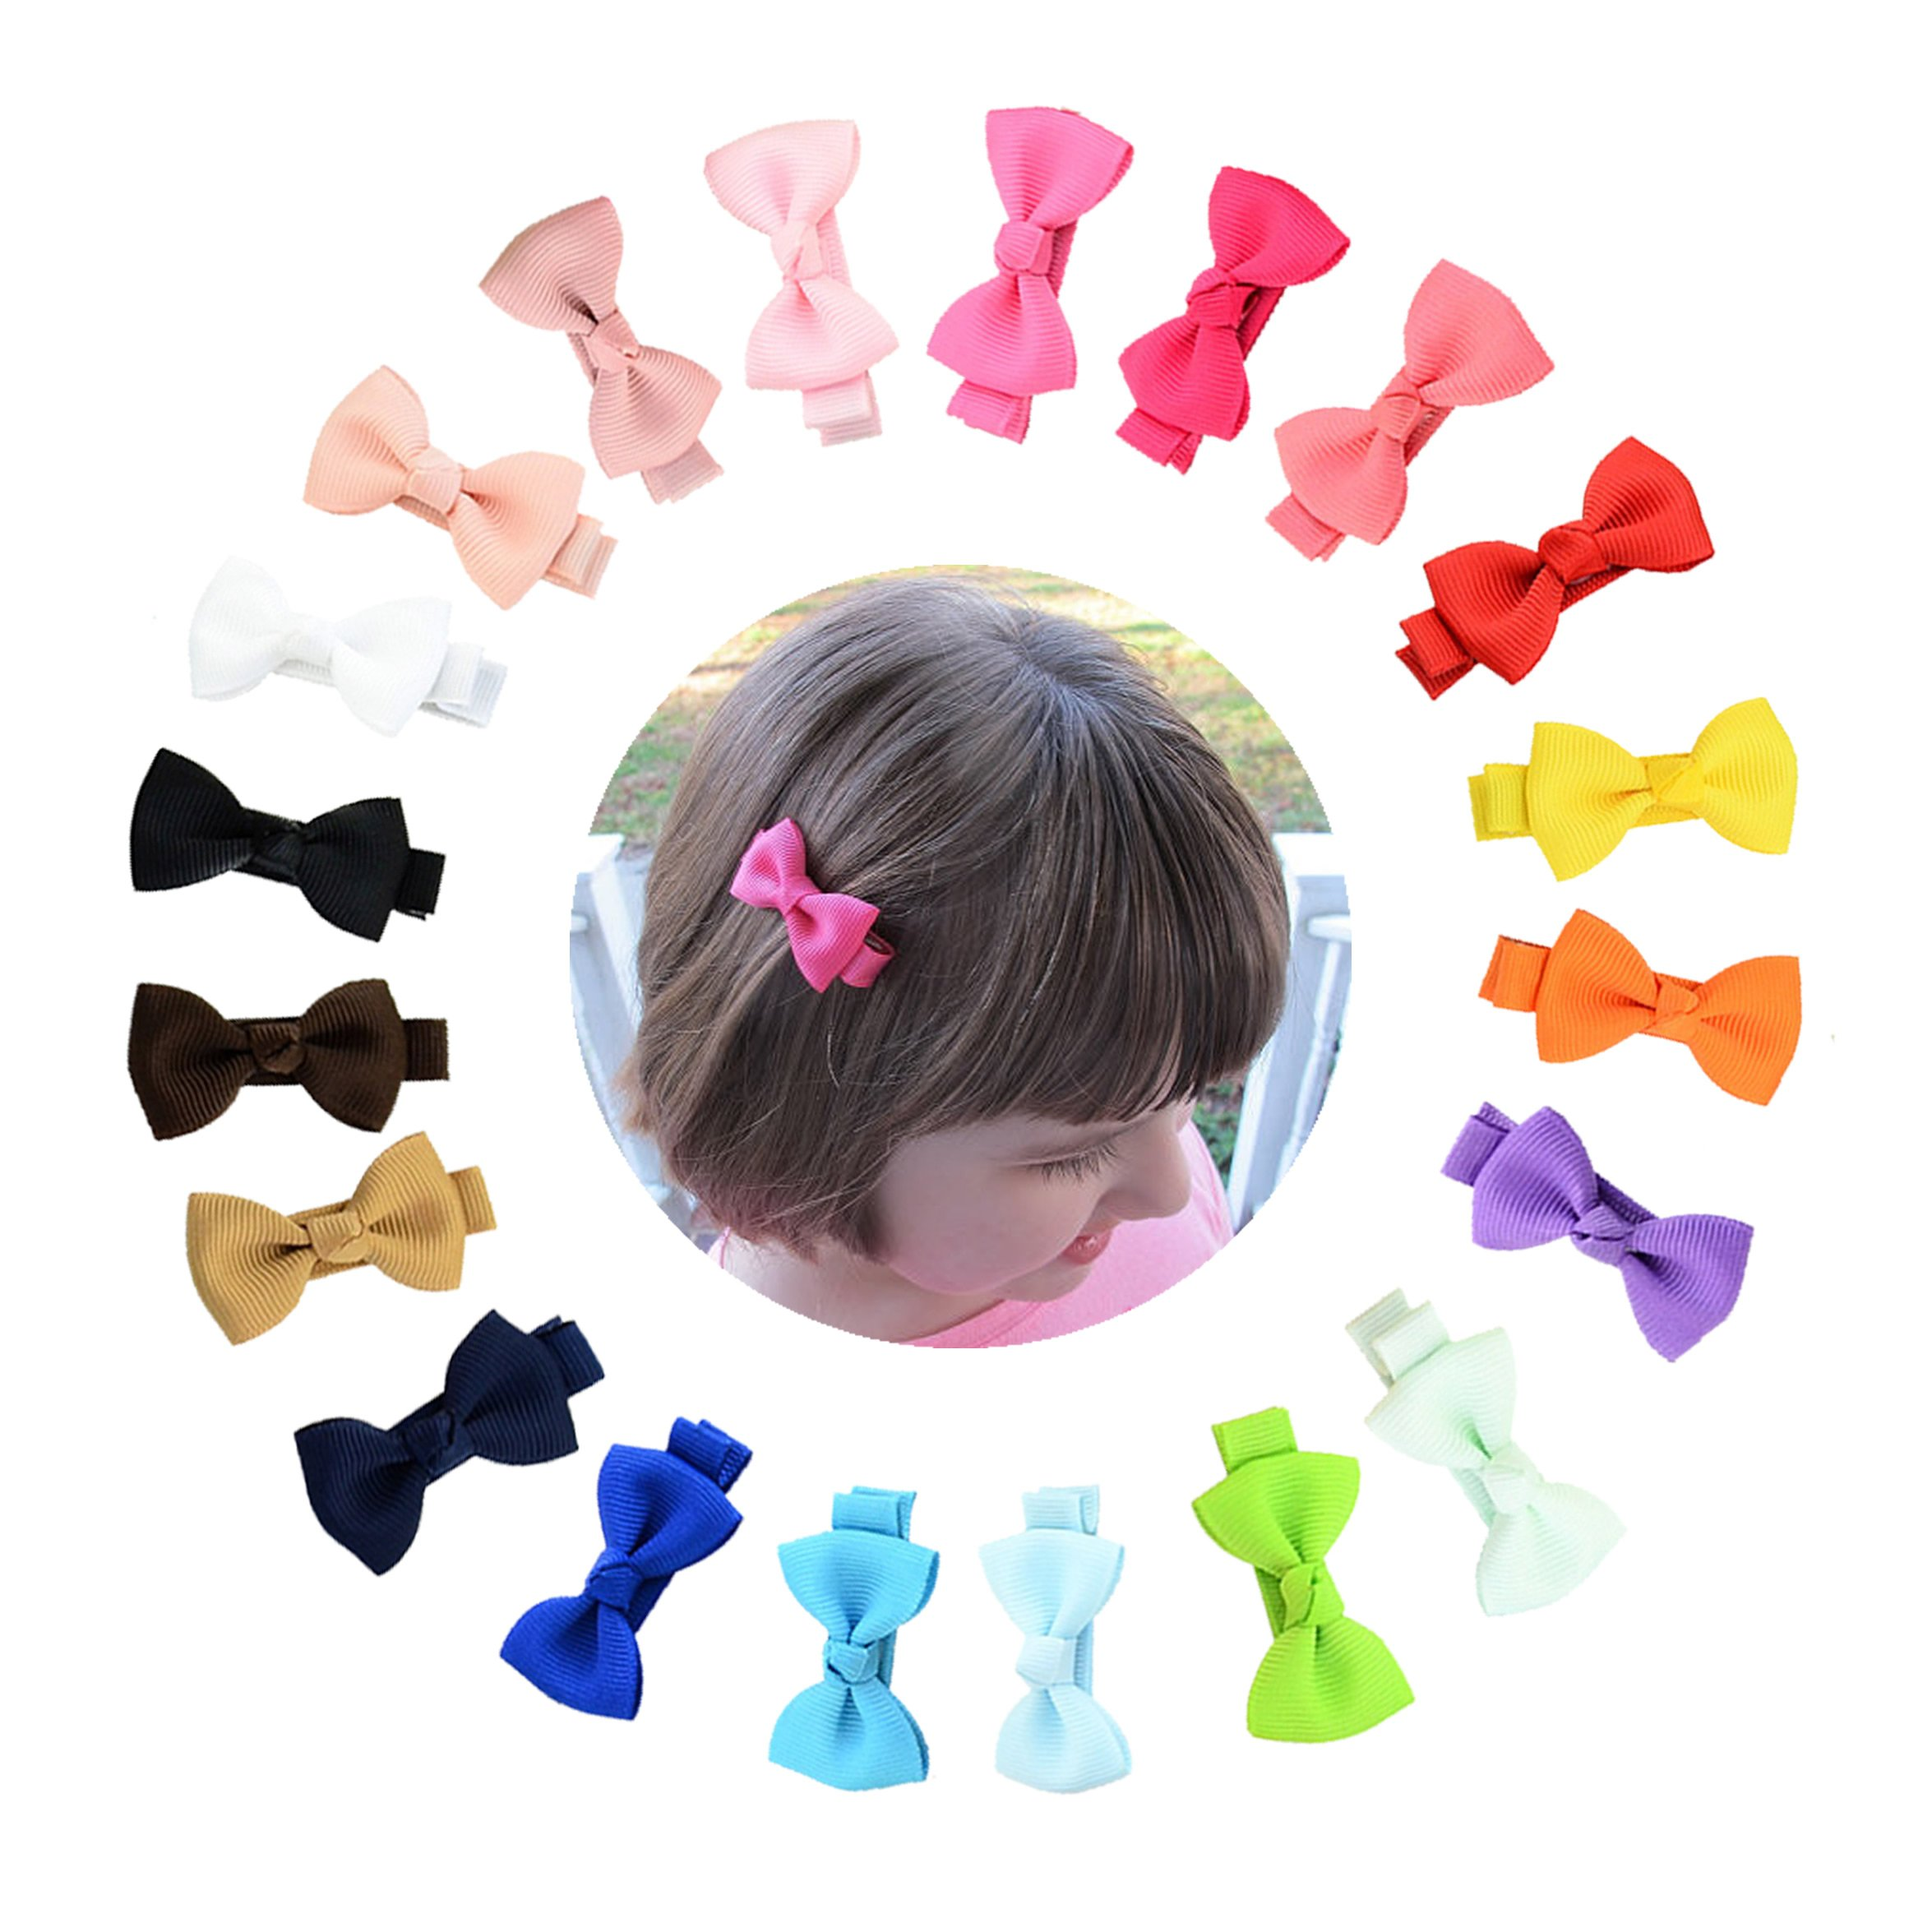 inSowni 2'' Bow Snap Alligator Hair Clips Pins Accessories for Baby Girl Toddlers